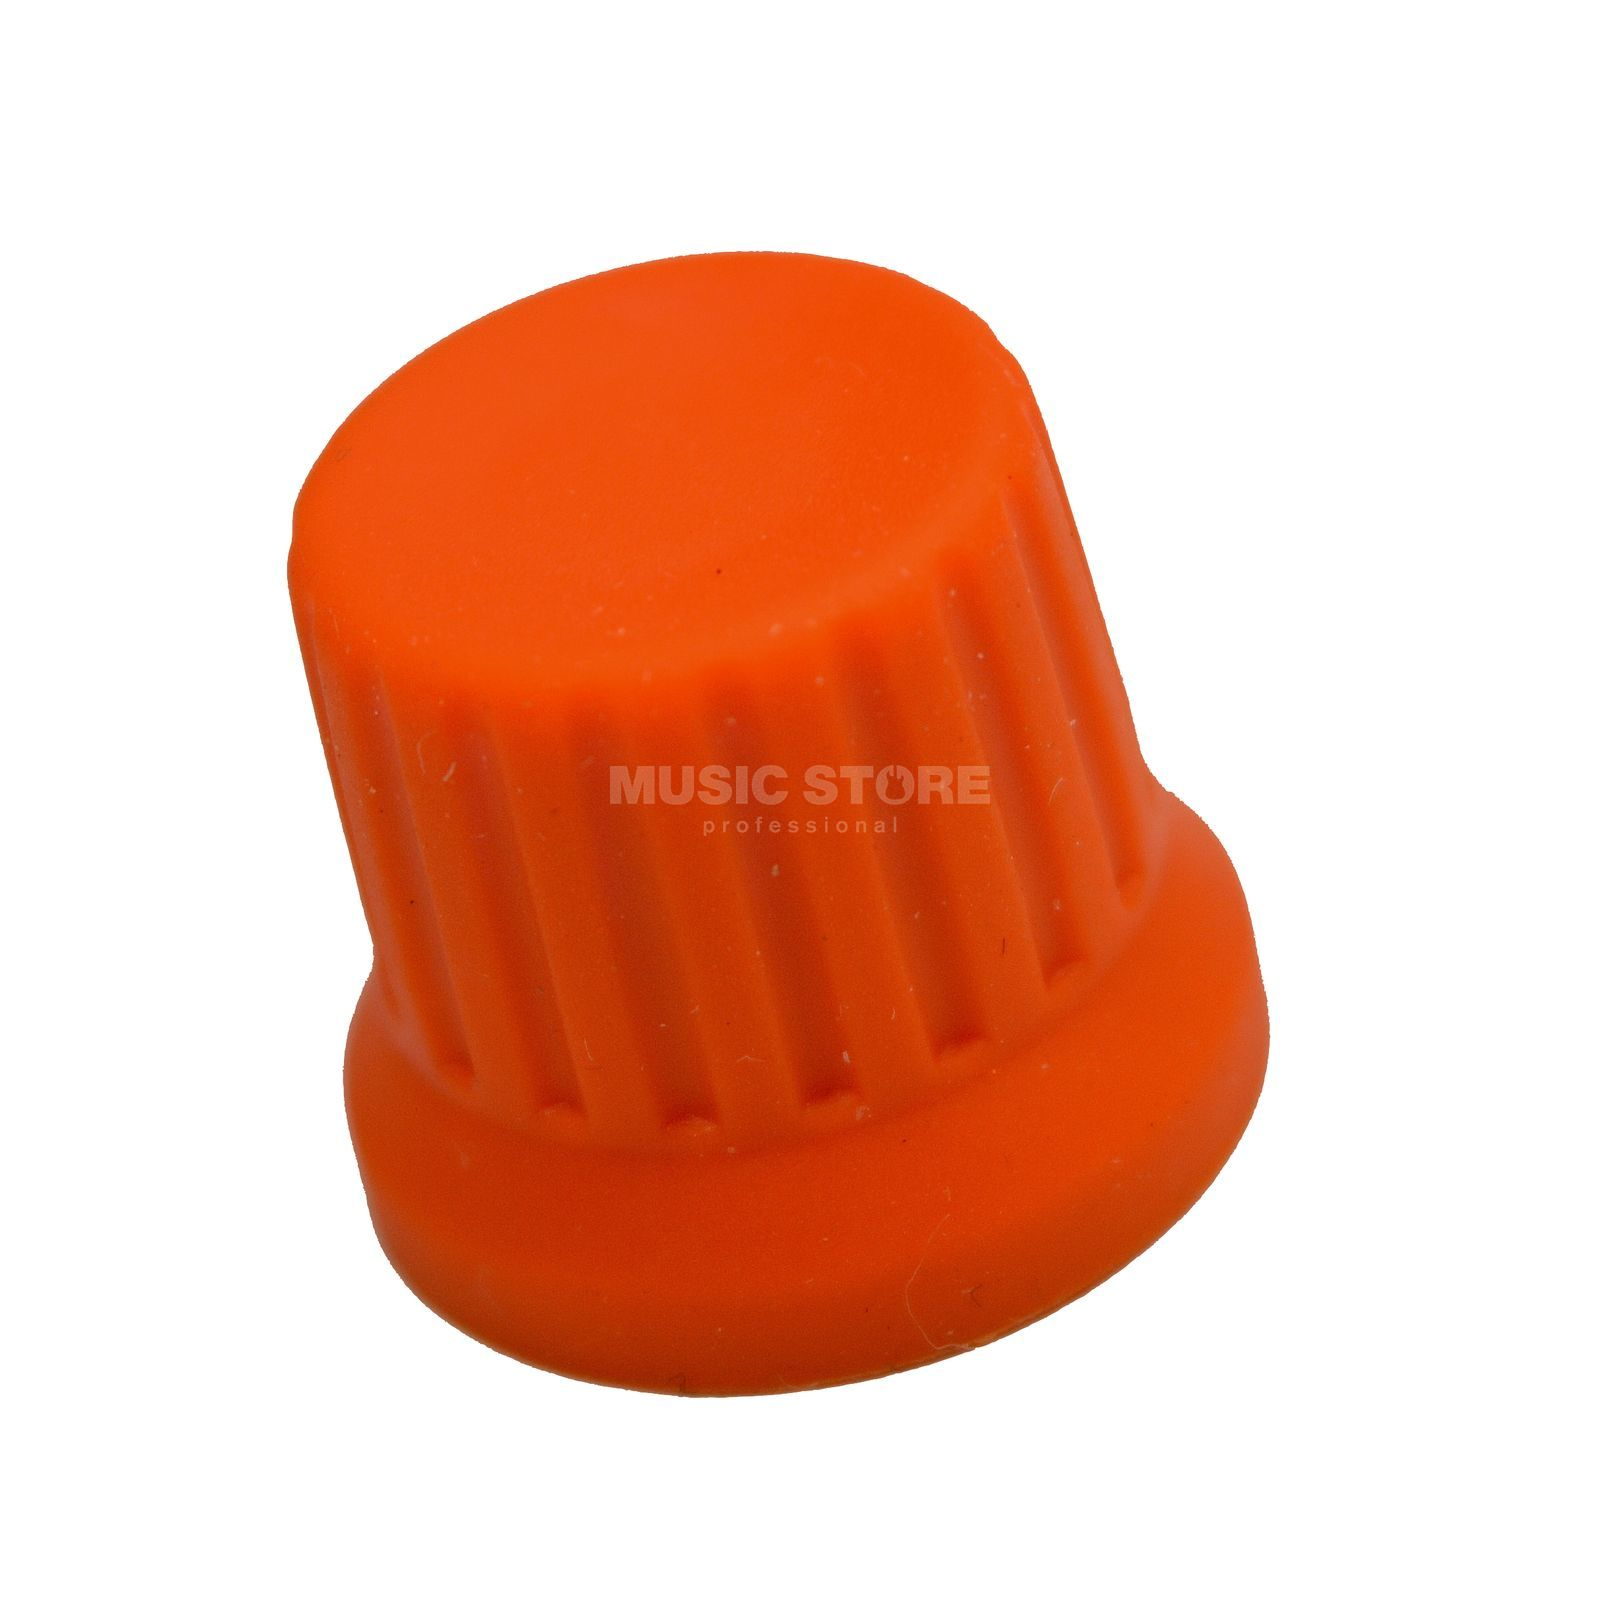 DJ TECHTOOLS Chroma Caps Bouton encodeur orange Image du produit